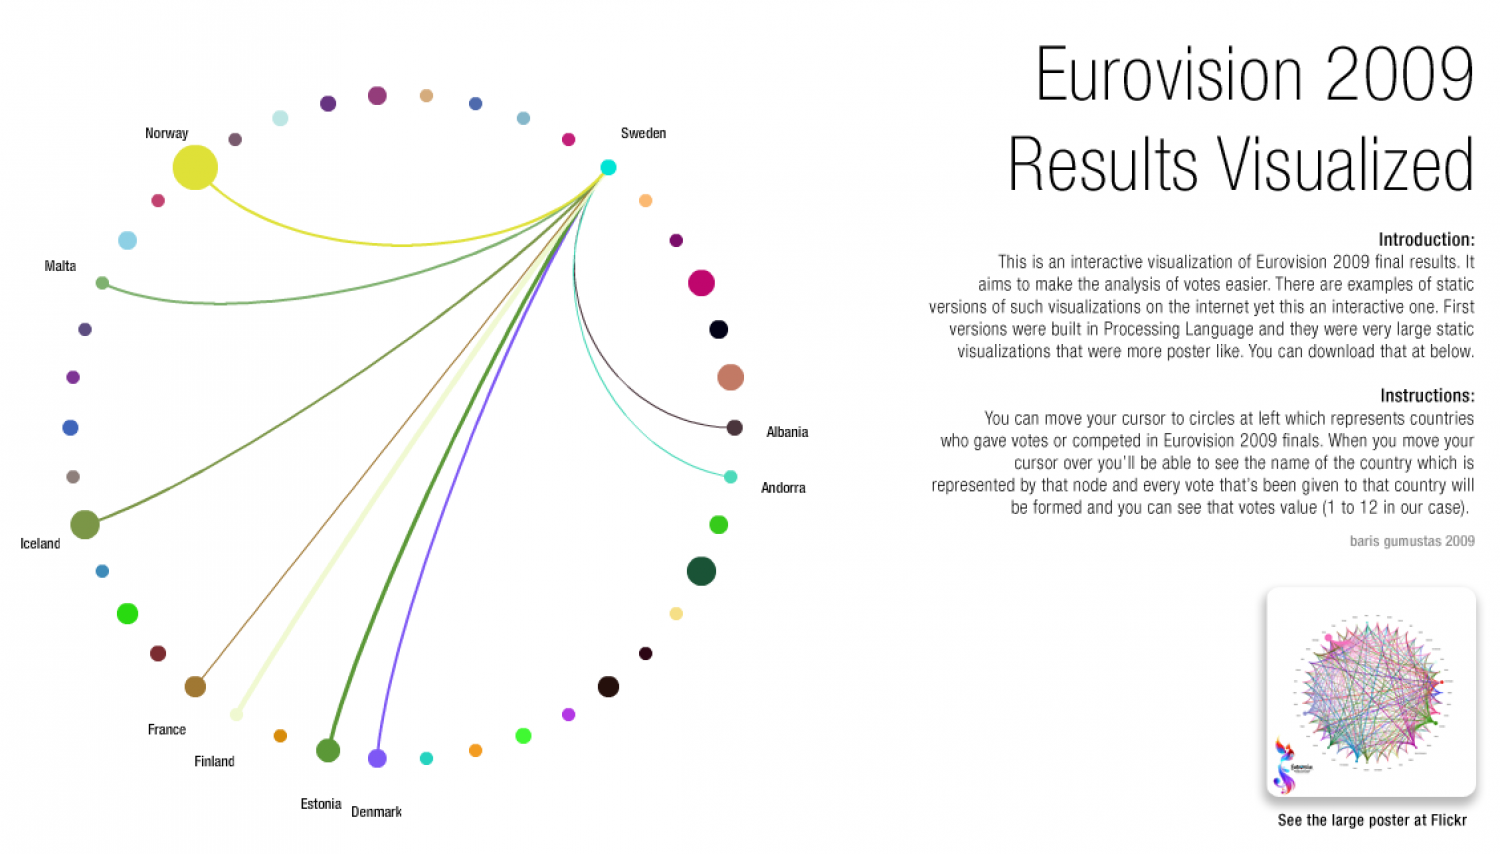 Moscow 2009 Eurovision Results Infographic